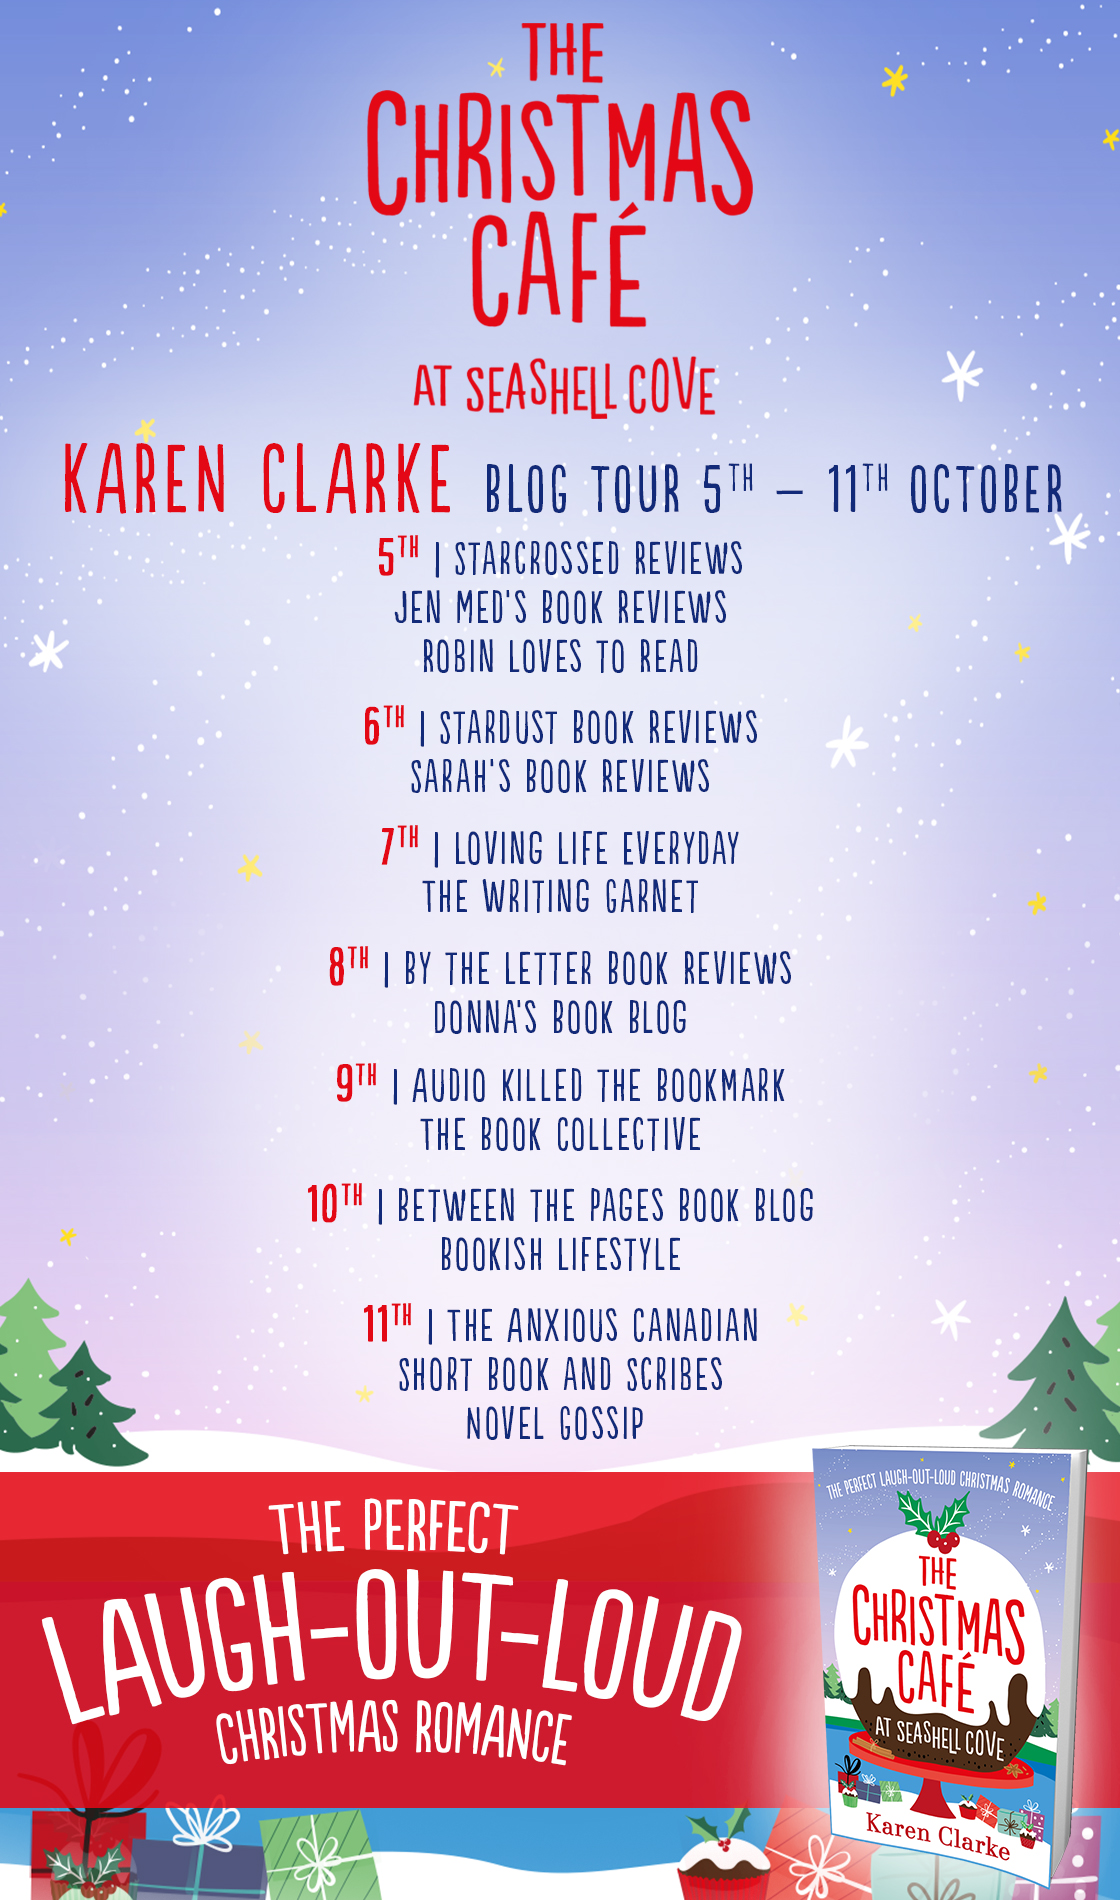 Blog Tour Review: The Christmas Cafe at Seashell Cove